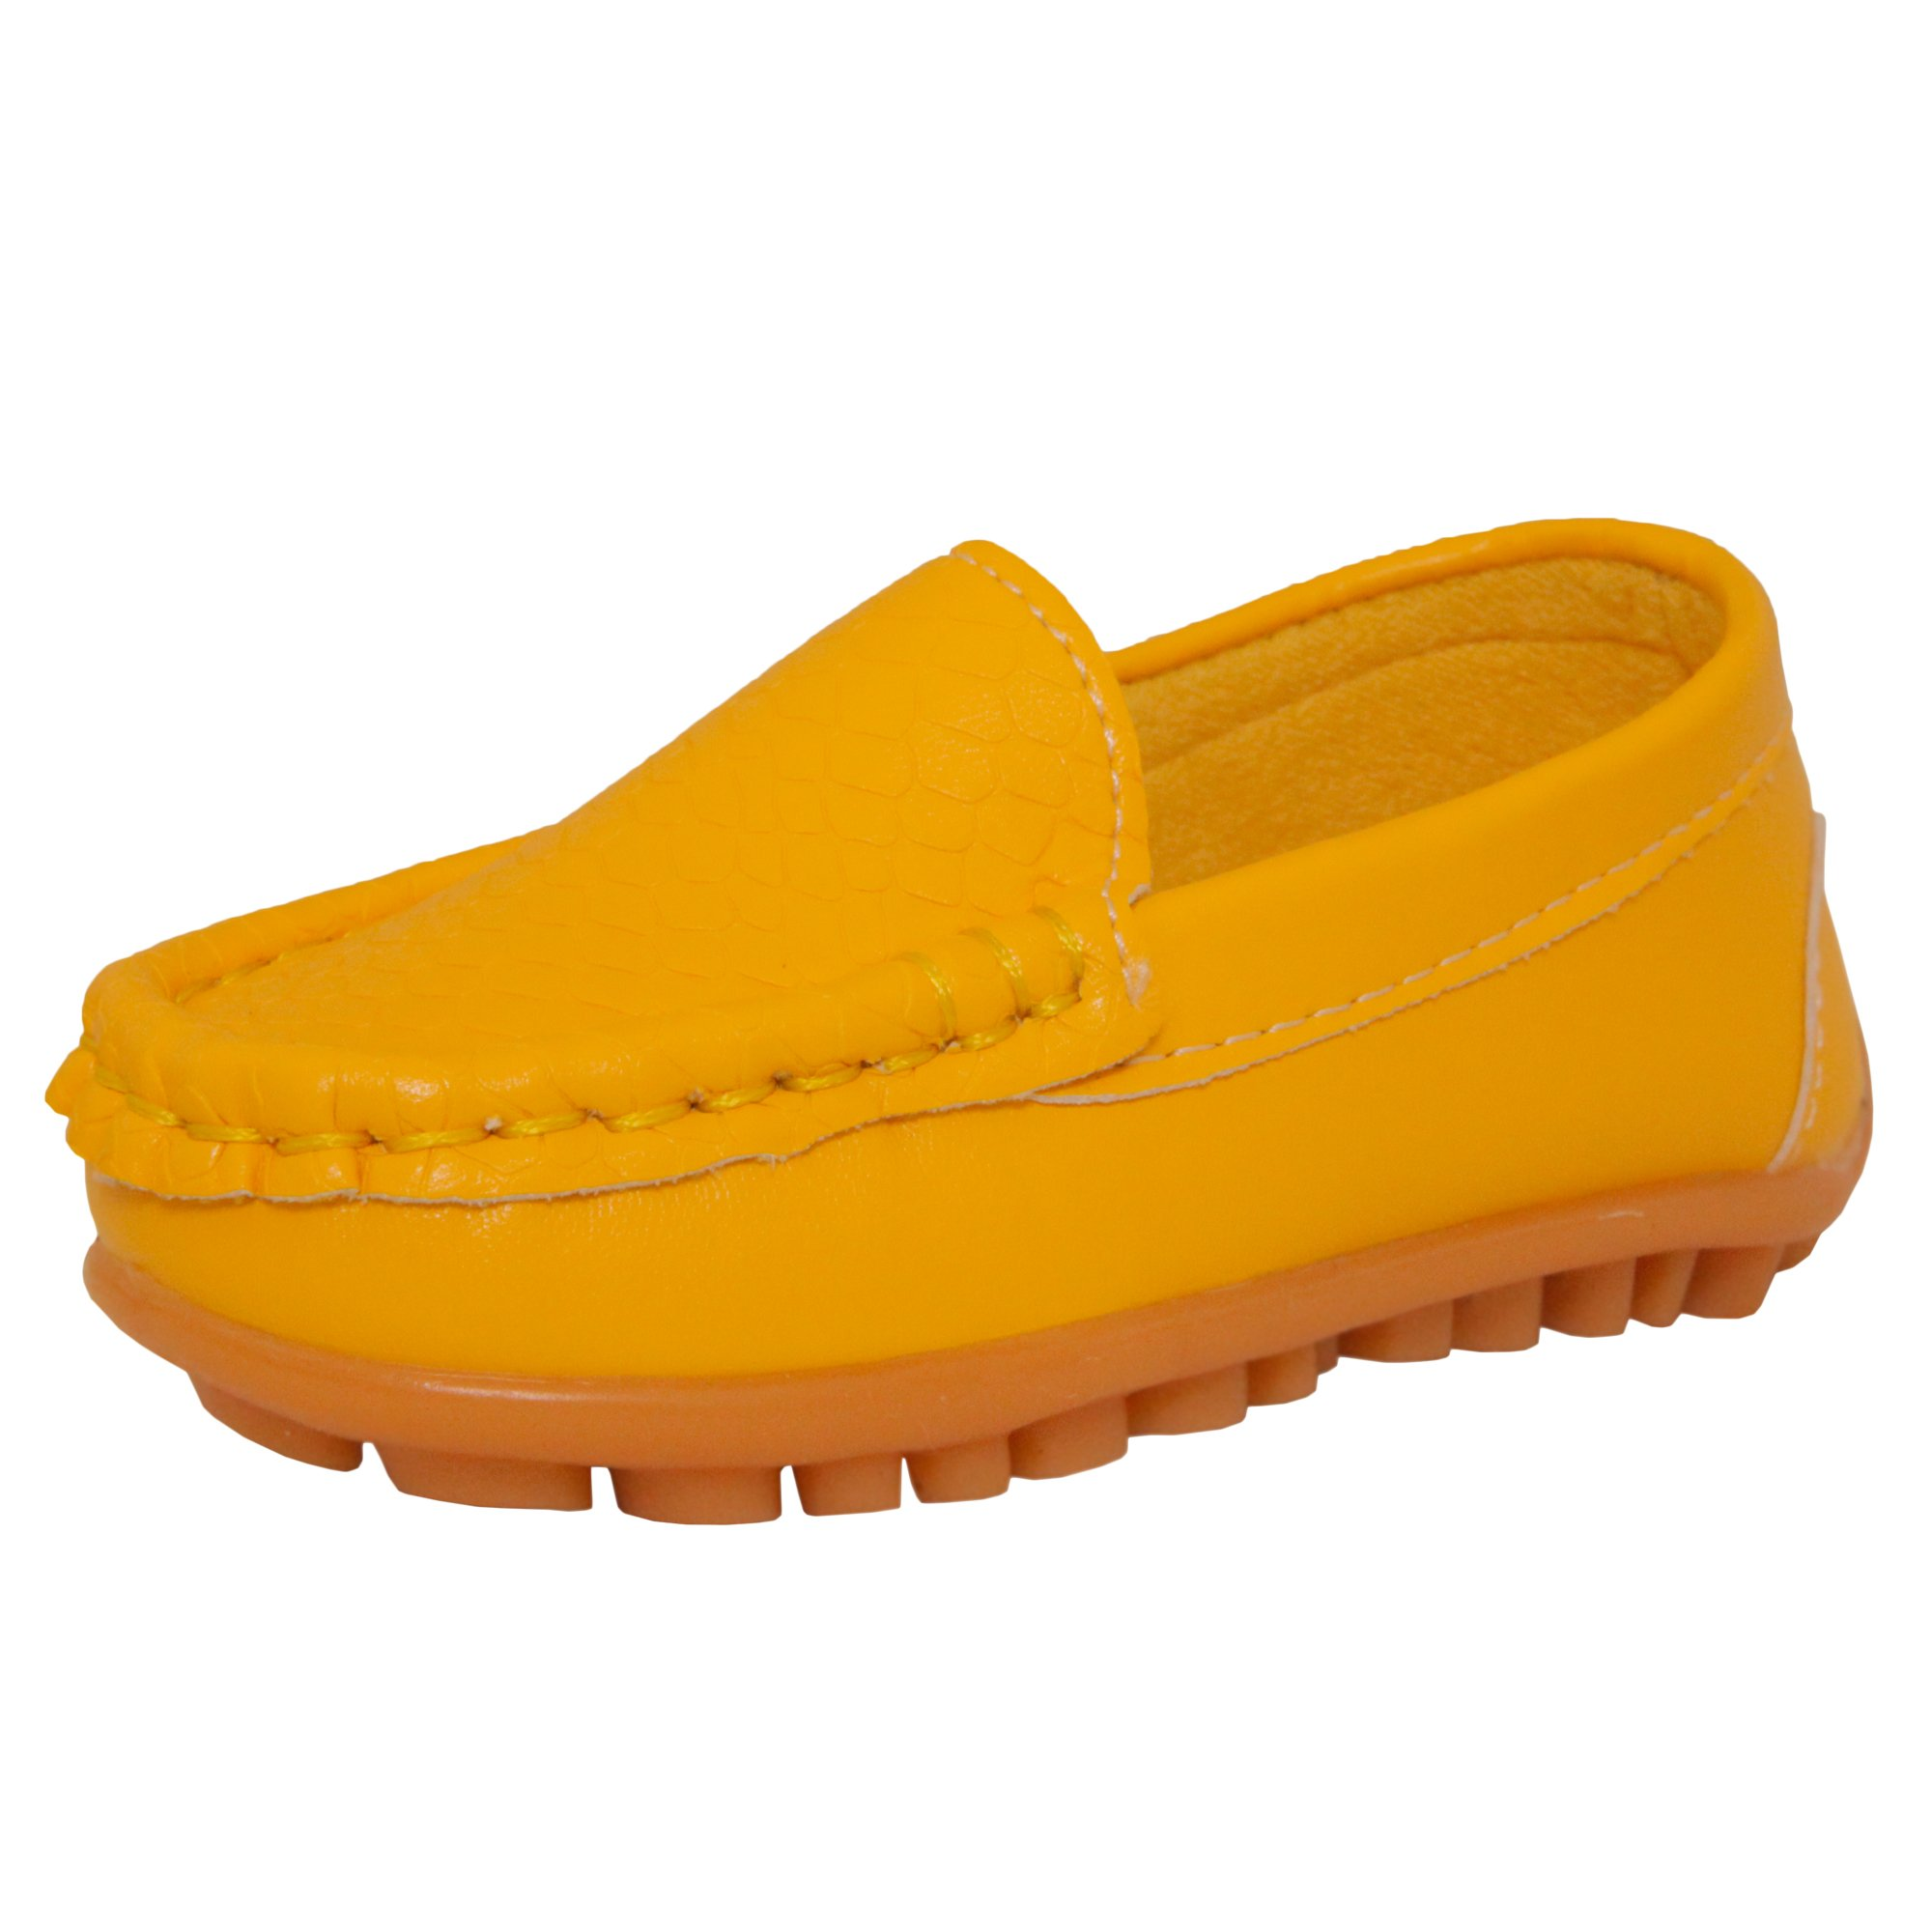 CONDA Kids Boys & Girls Yellow Loafers Water Resistent Slip On Split Leather Boys & Girls Oxfords - Deck Shoes/Sneakers Size 7 M US Toddler